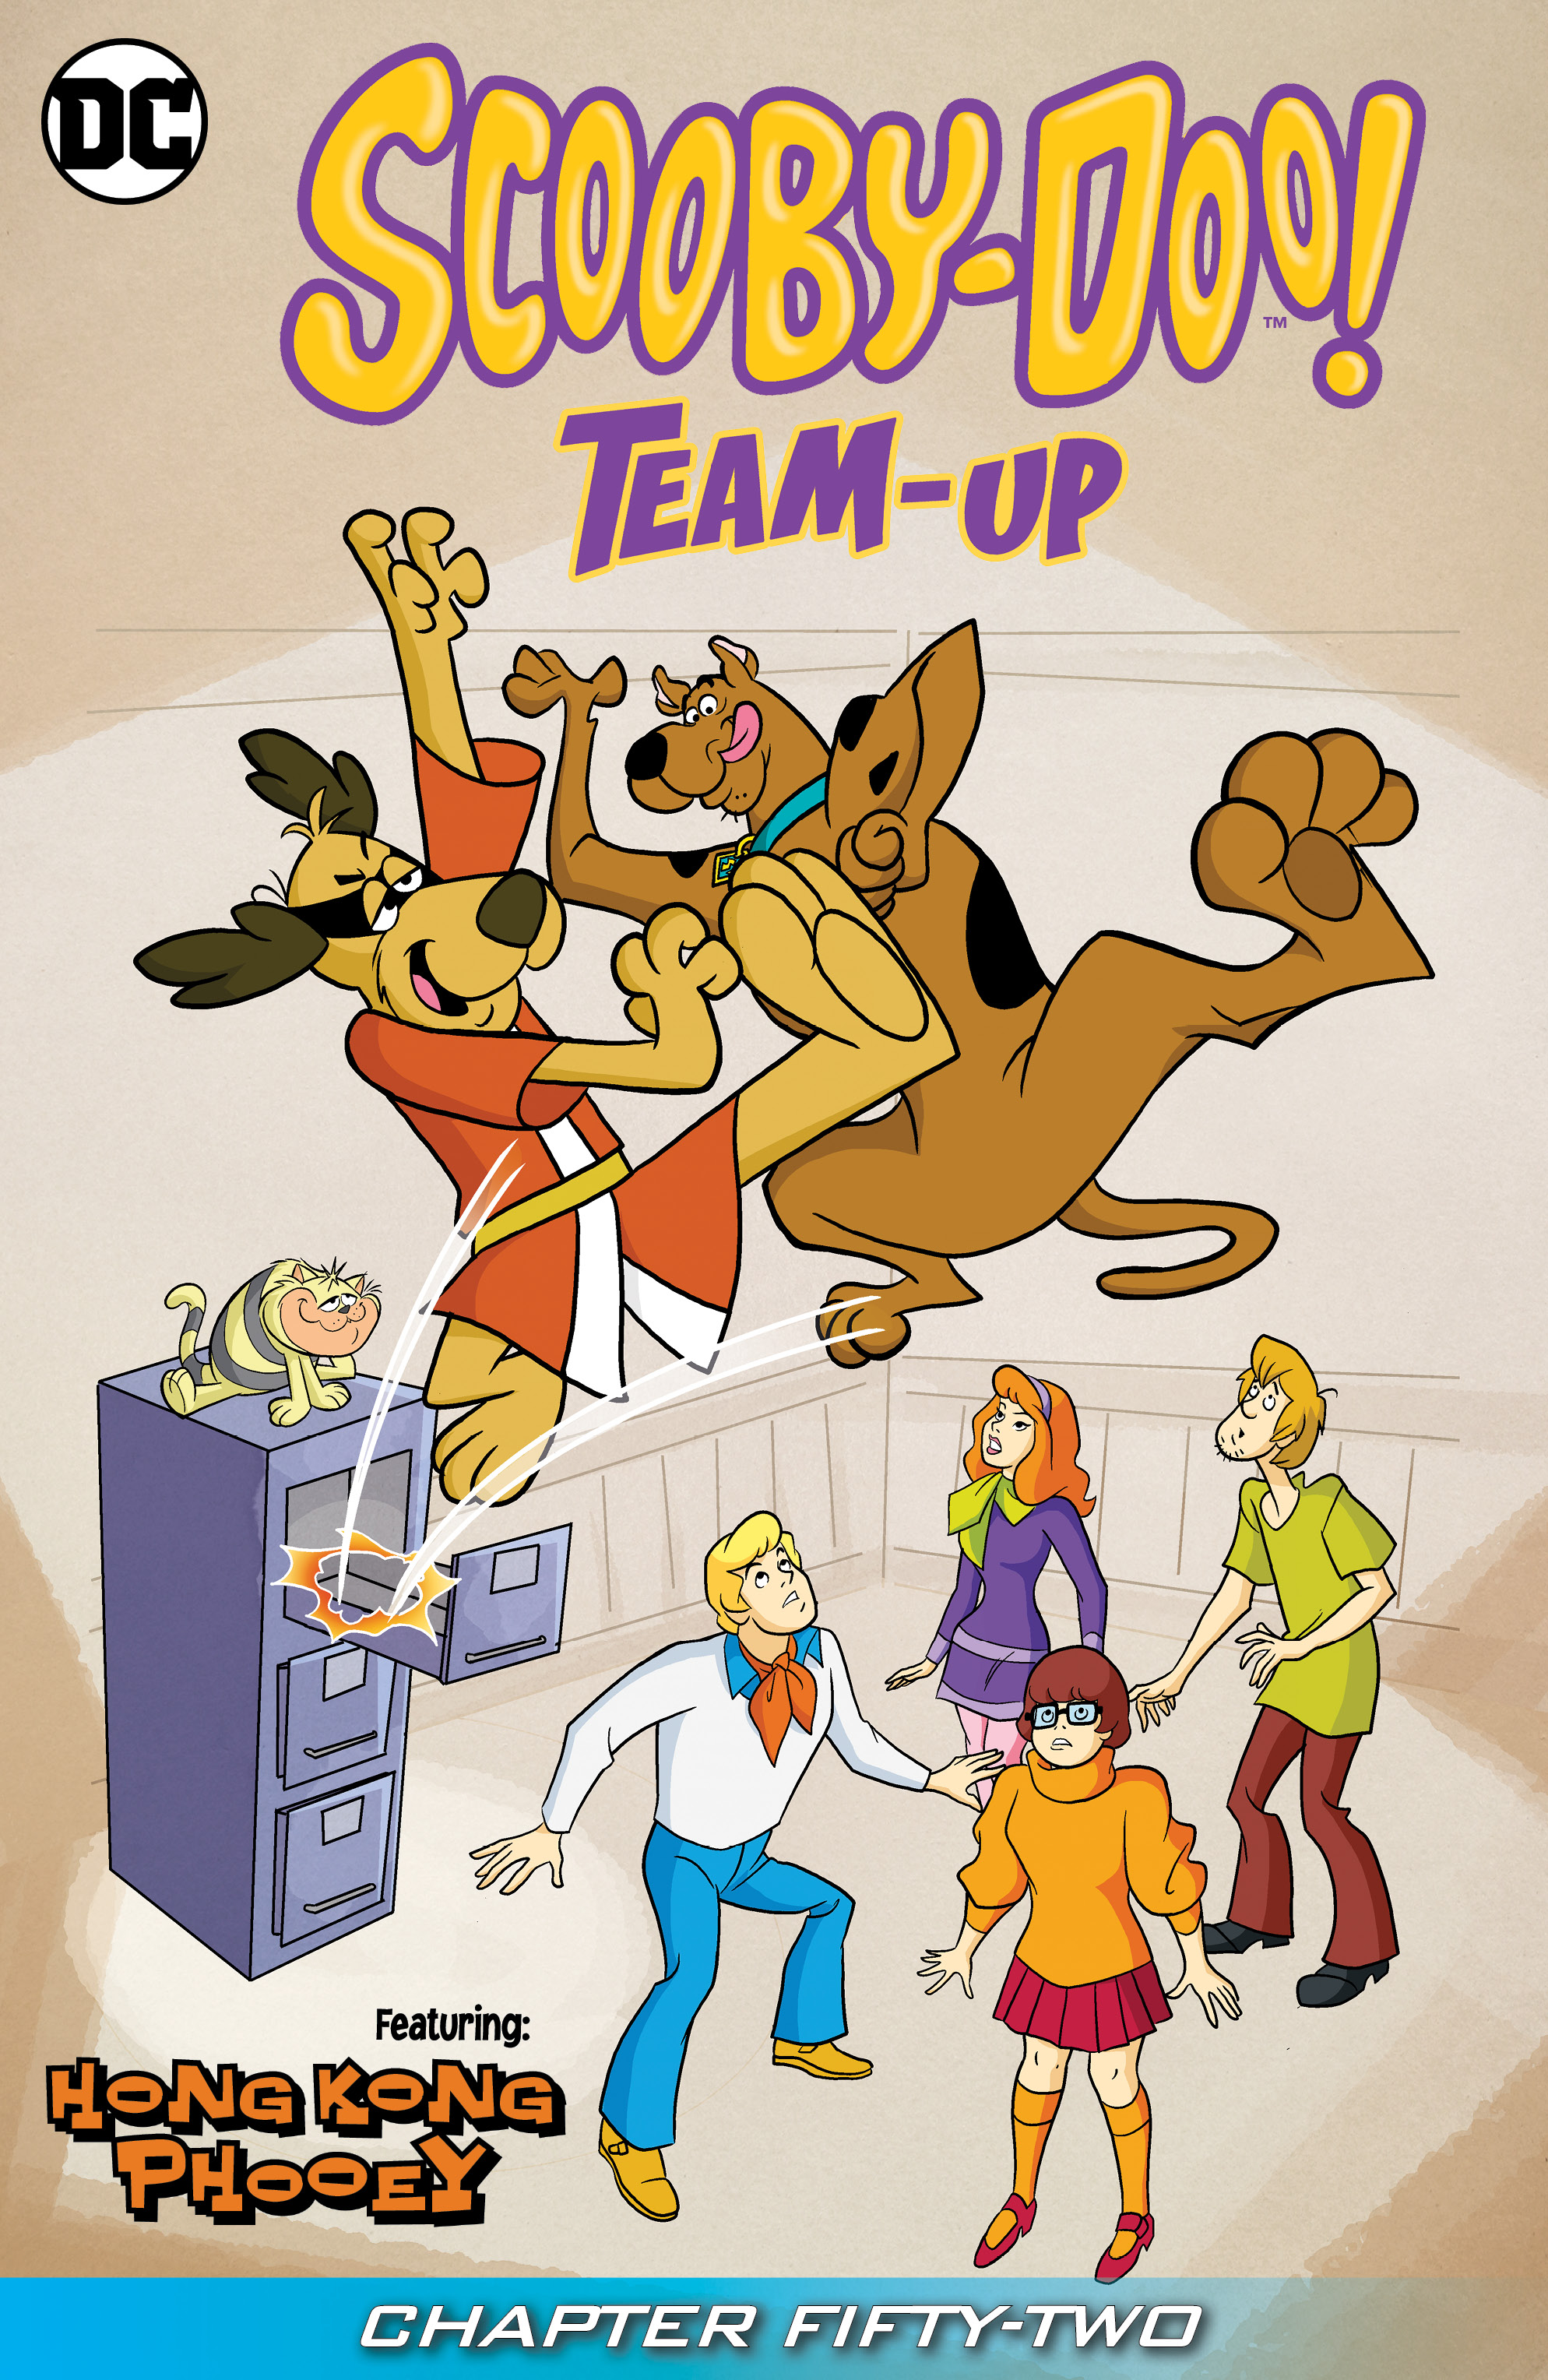 Read online Scooby-Doo! Team-Up comic -  Issue #52 - 2